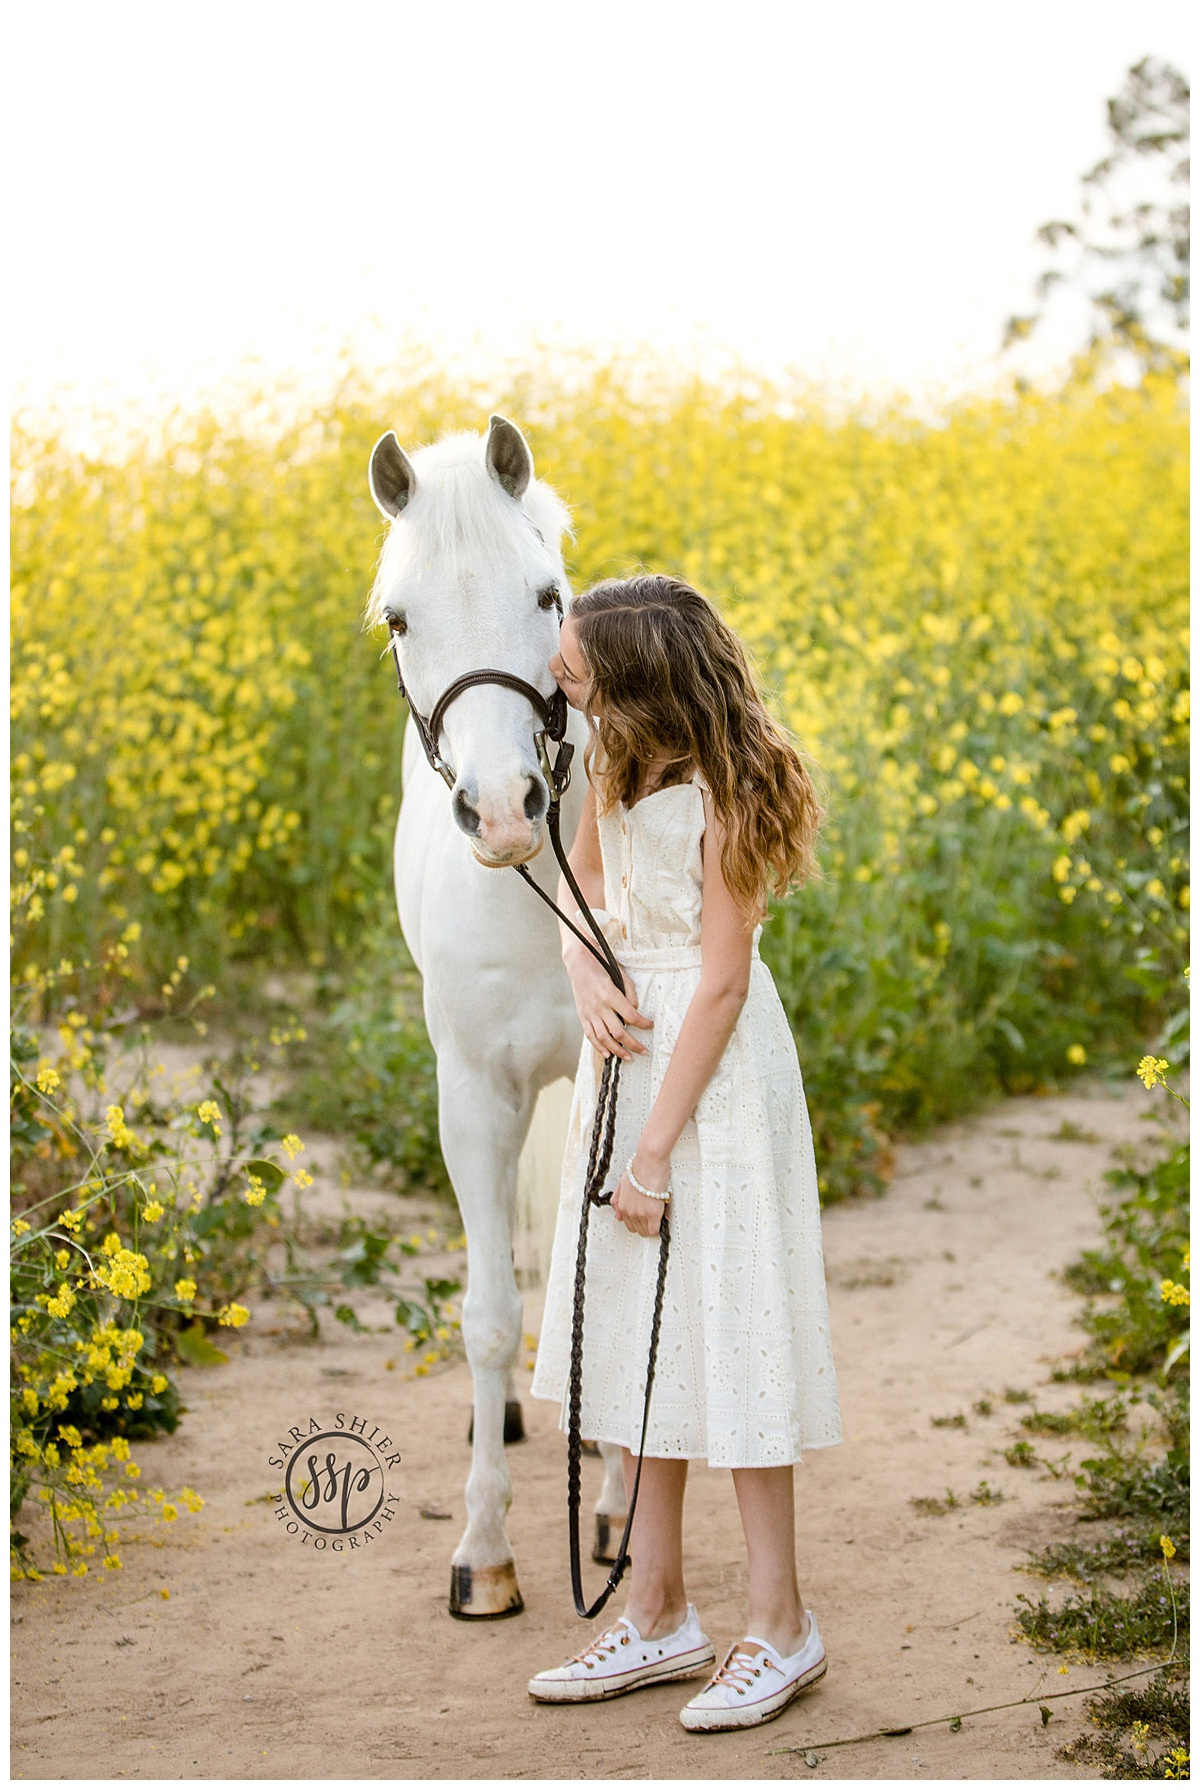 Black Background Horse Rider Equine Photographer Southern California Sara Shier Photography SoCal Equestrian Cowgirl USEF_0213.jpg